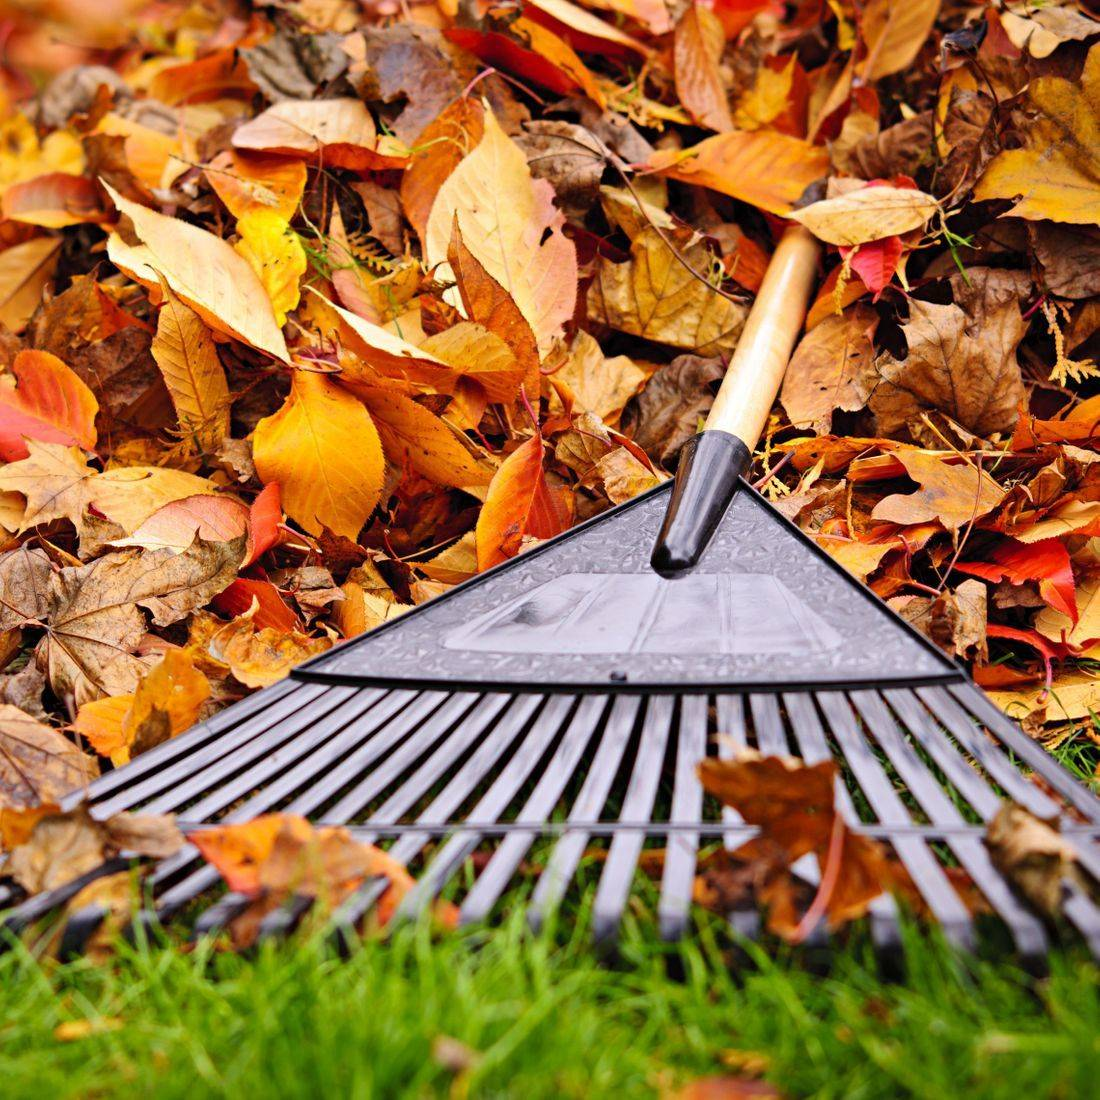 leaf clean up, debris removal, yard cleanup, fall clean up